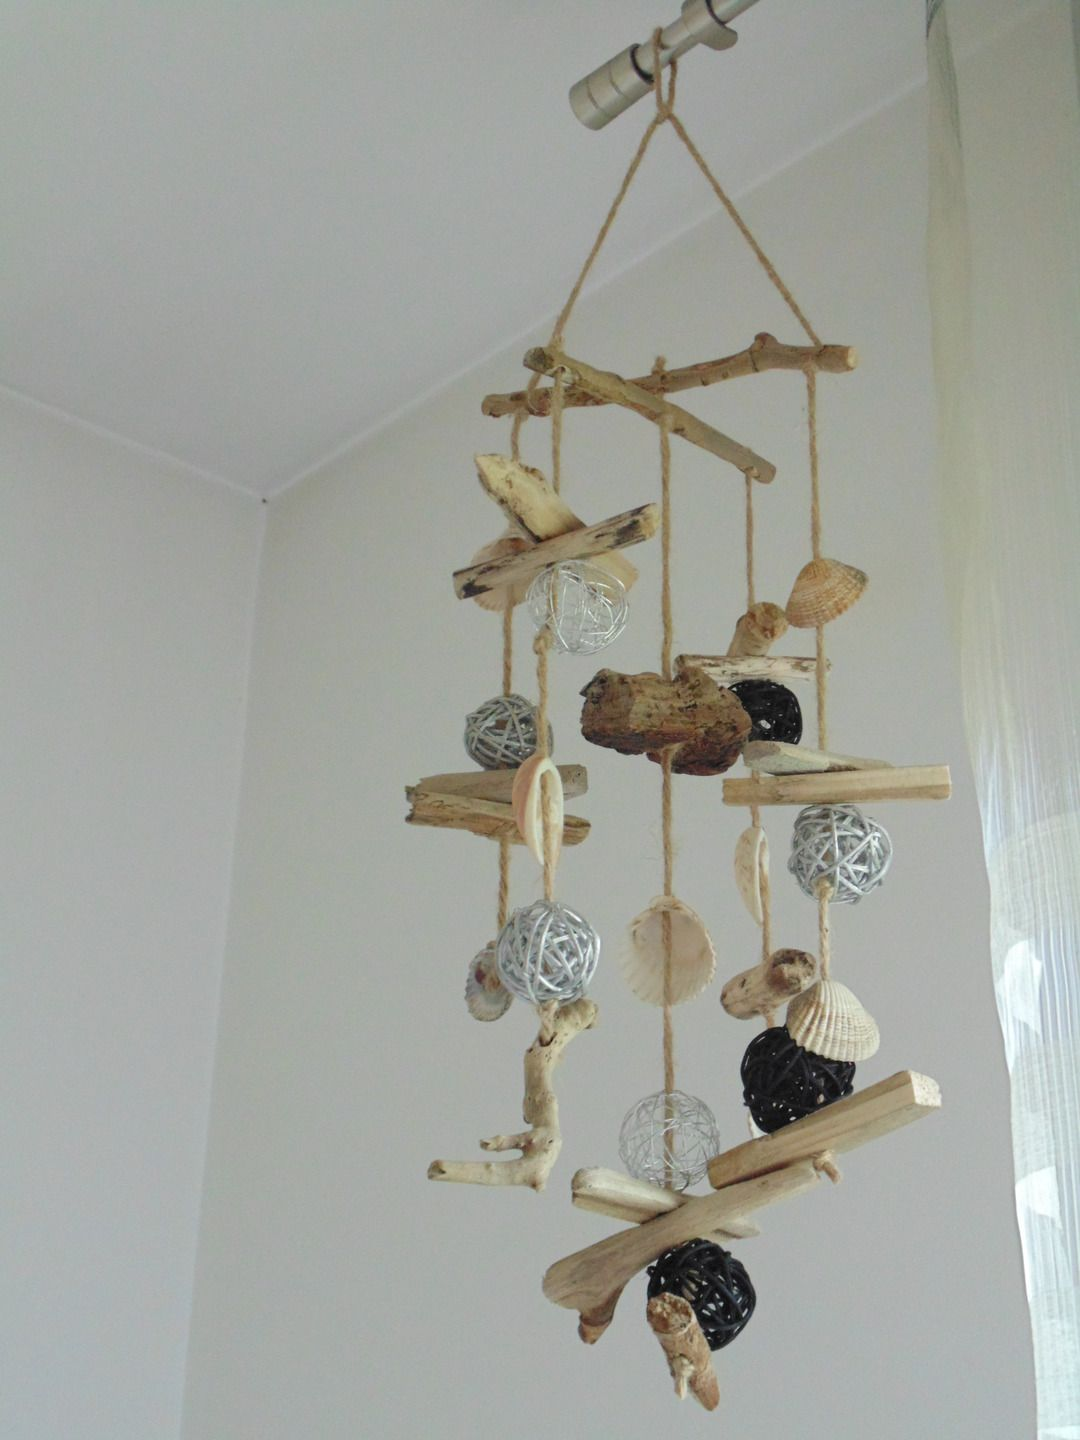 Mobile suspension d co en bois flott coquillages et for Suspension en bois flotte pas cher